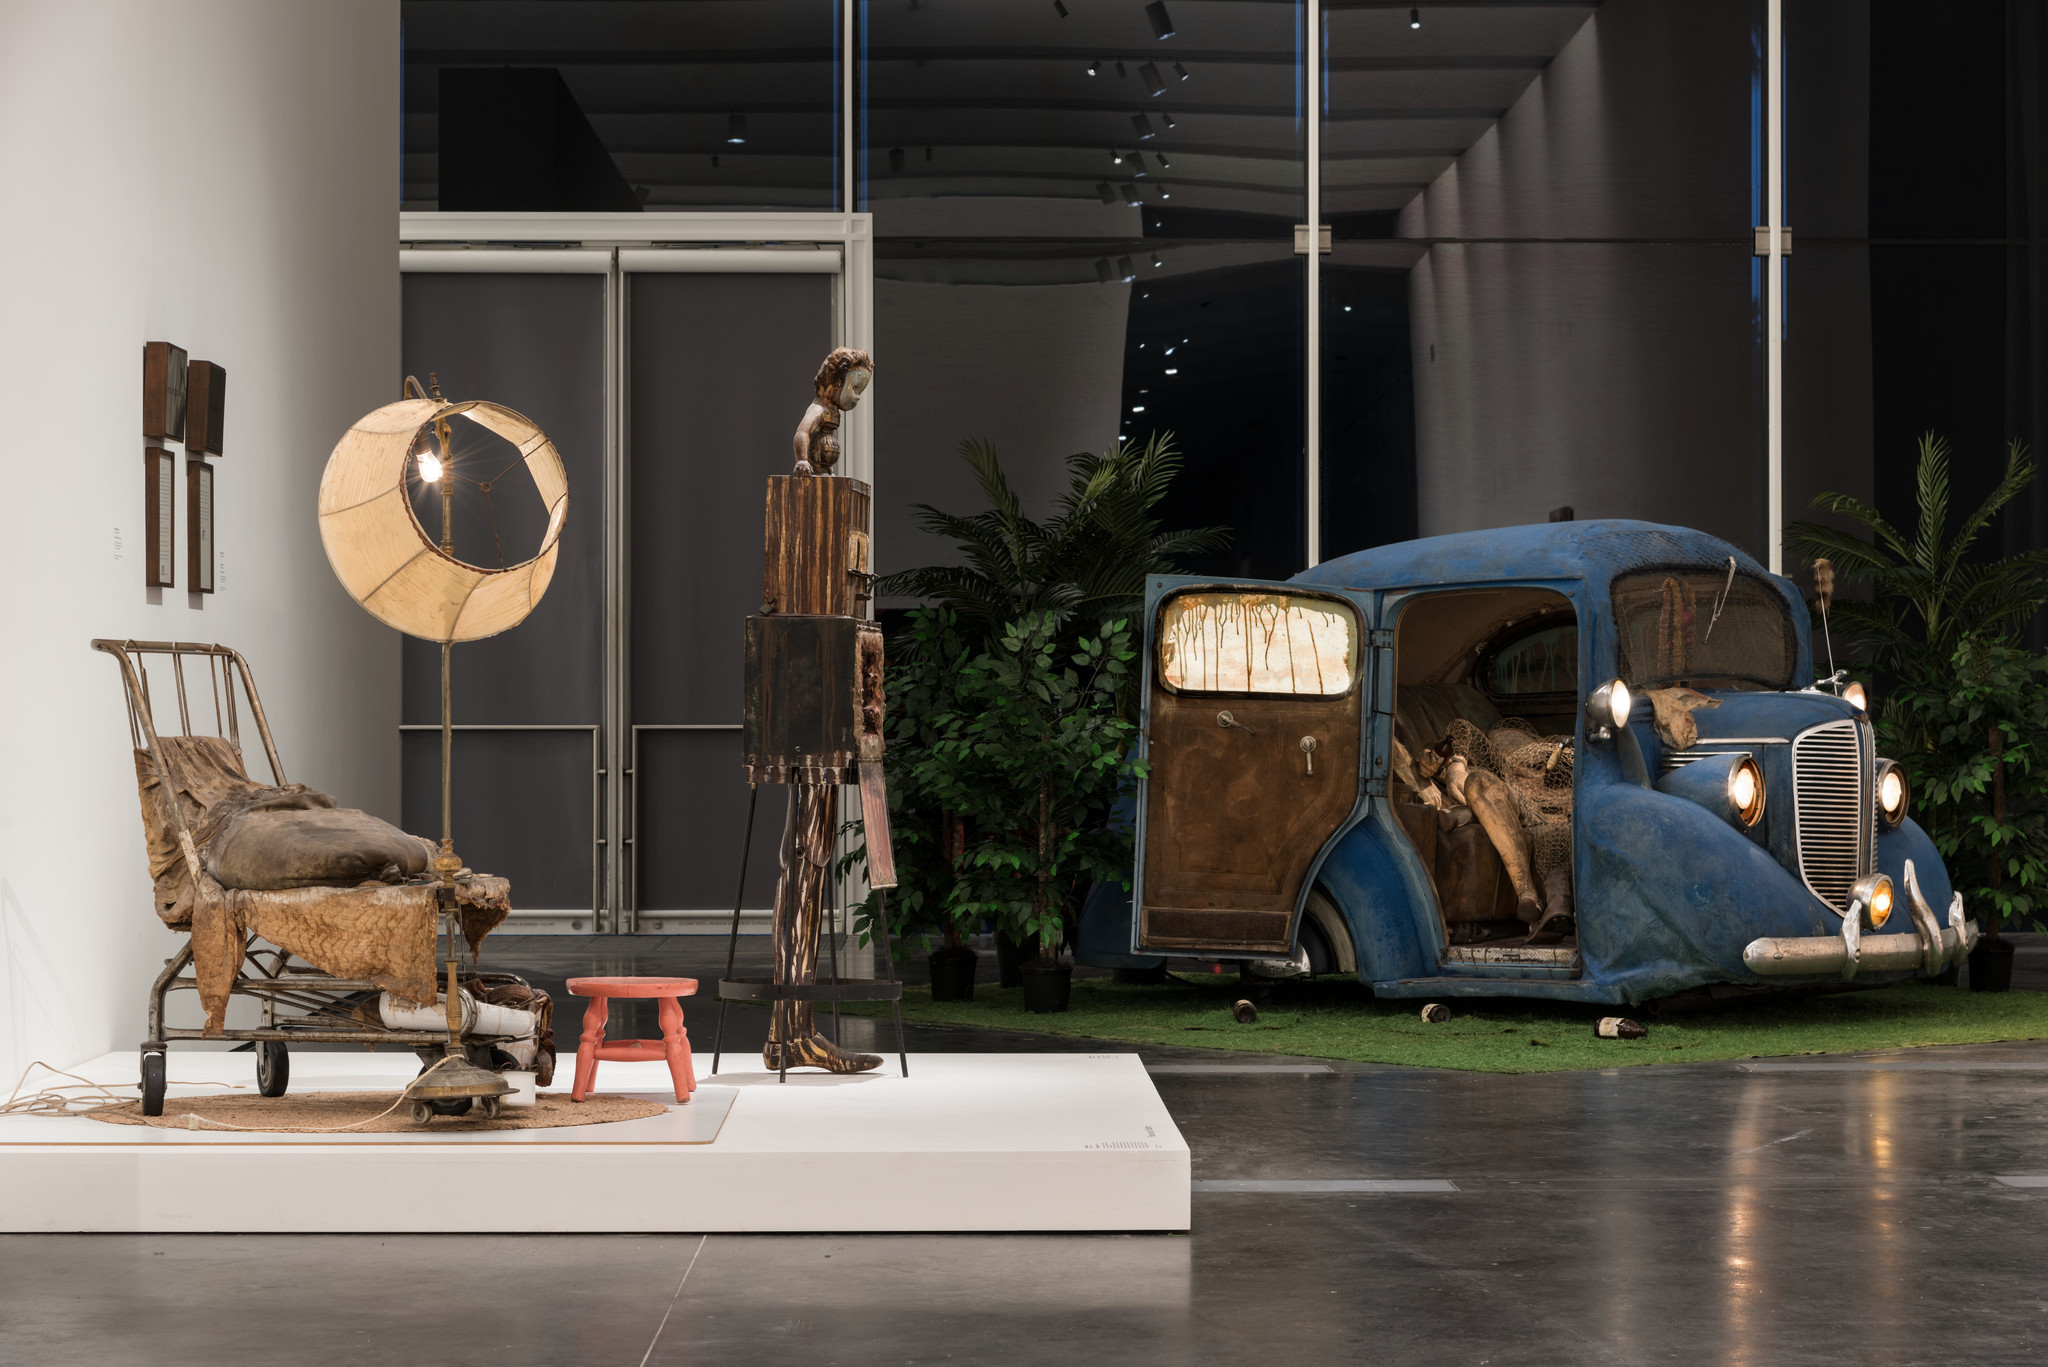 """Edward Kienholz's """"Illegal Operation,"""" left, and """"Back Seat Dodge '38,"""" right, are in the Dwan show."""